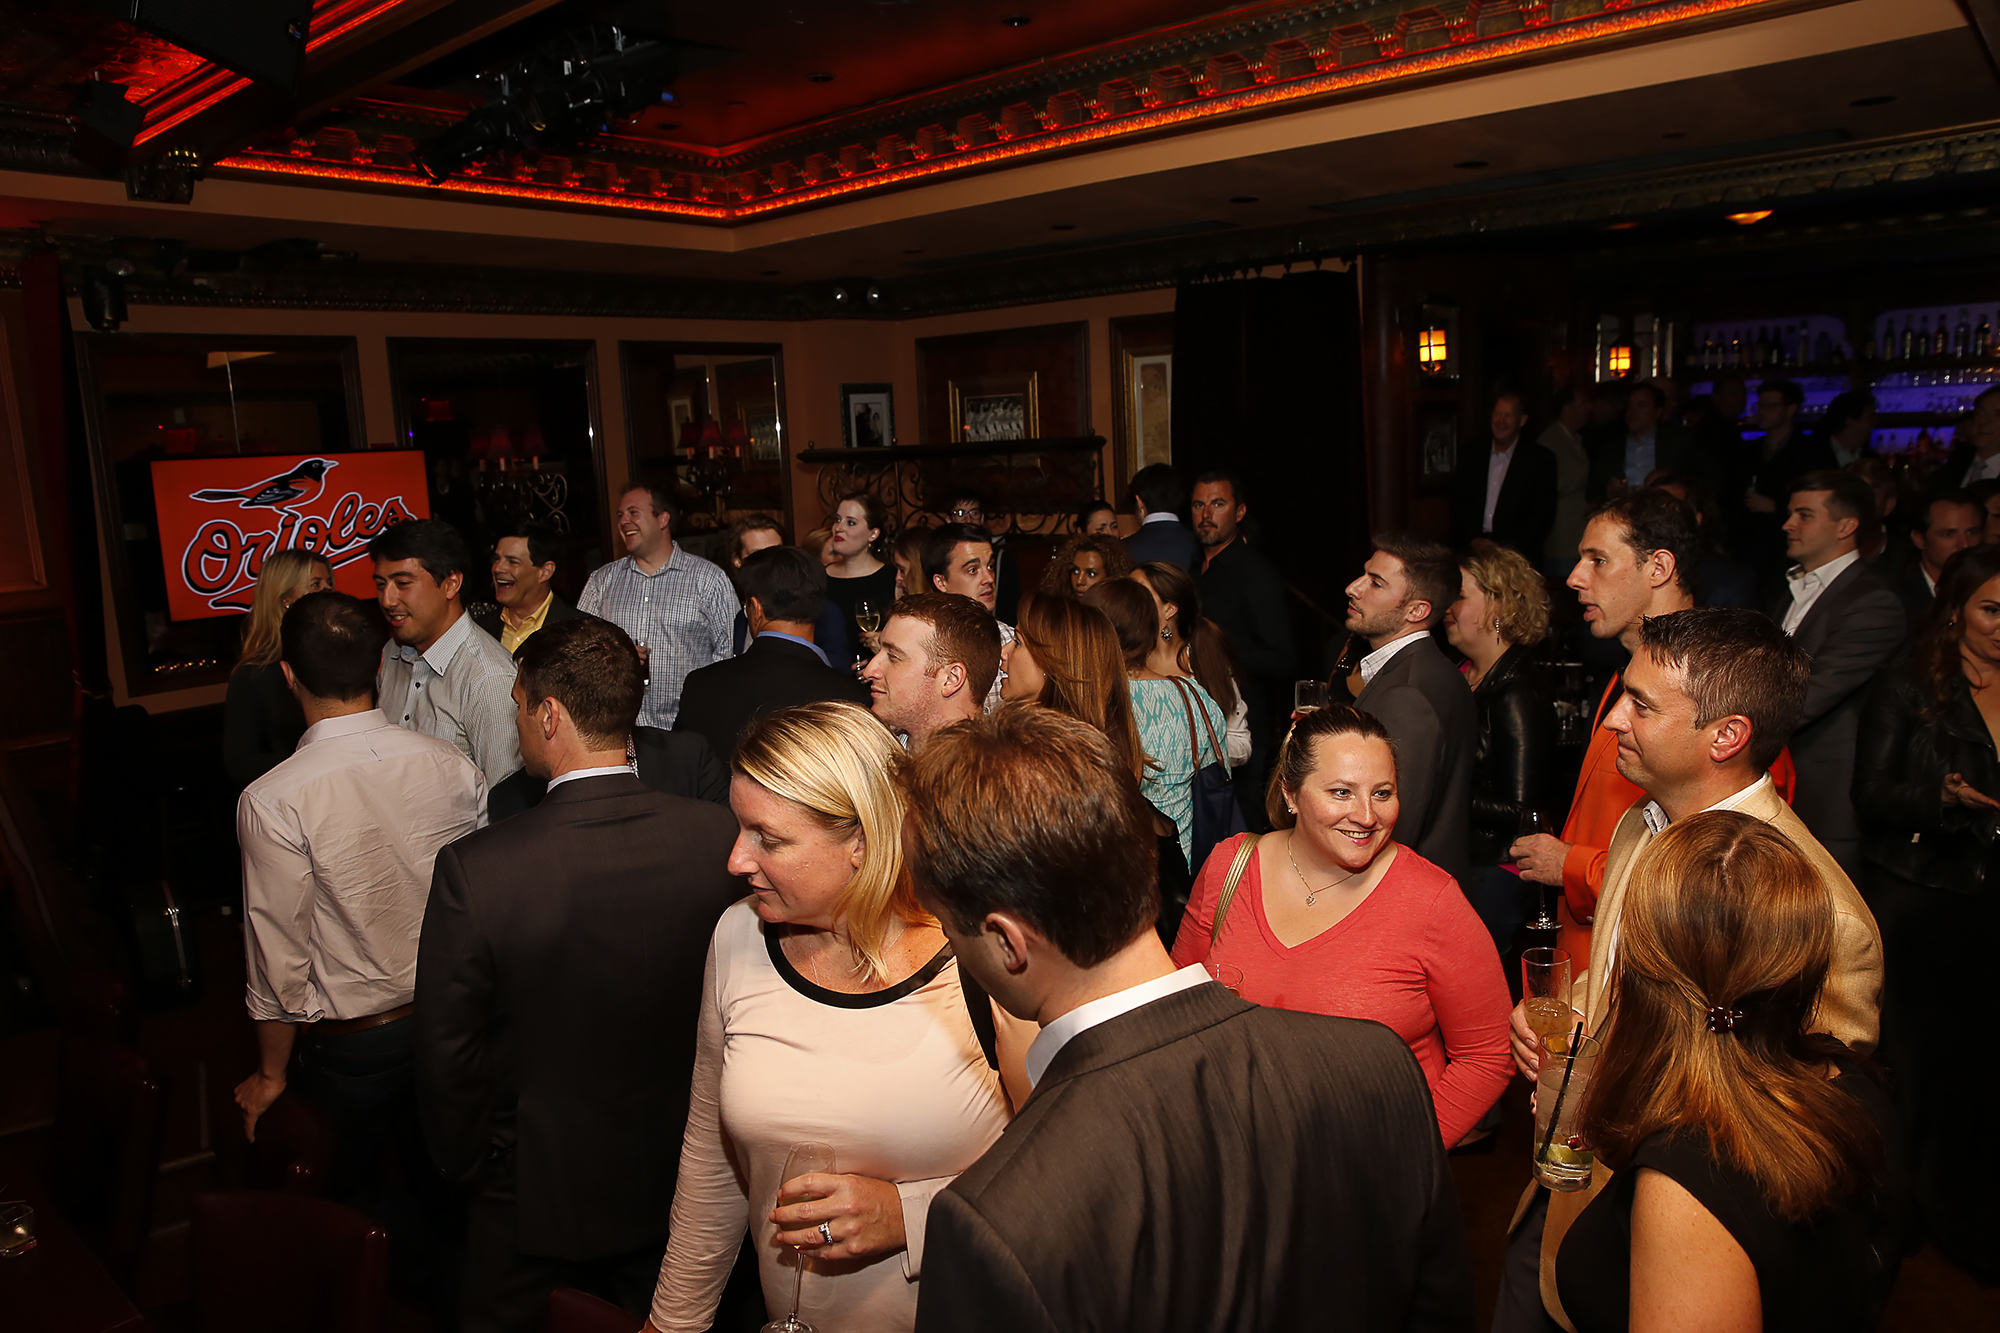 People mingle in dining room at Baltimore Orioles event